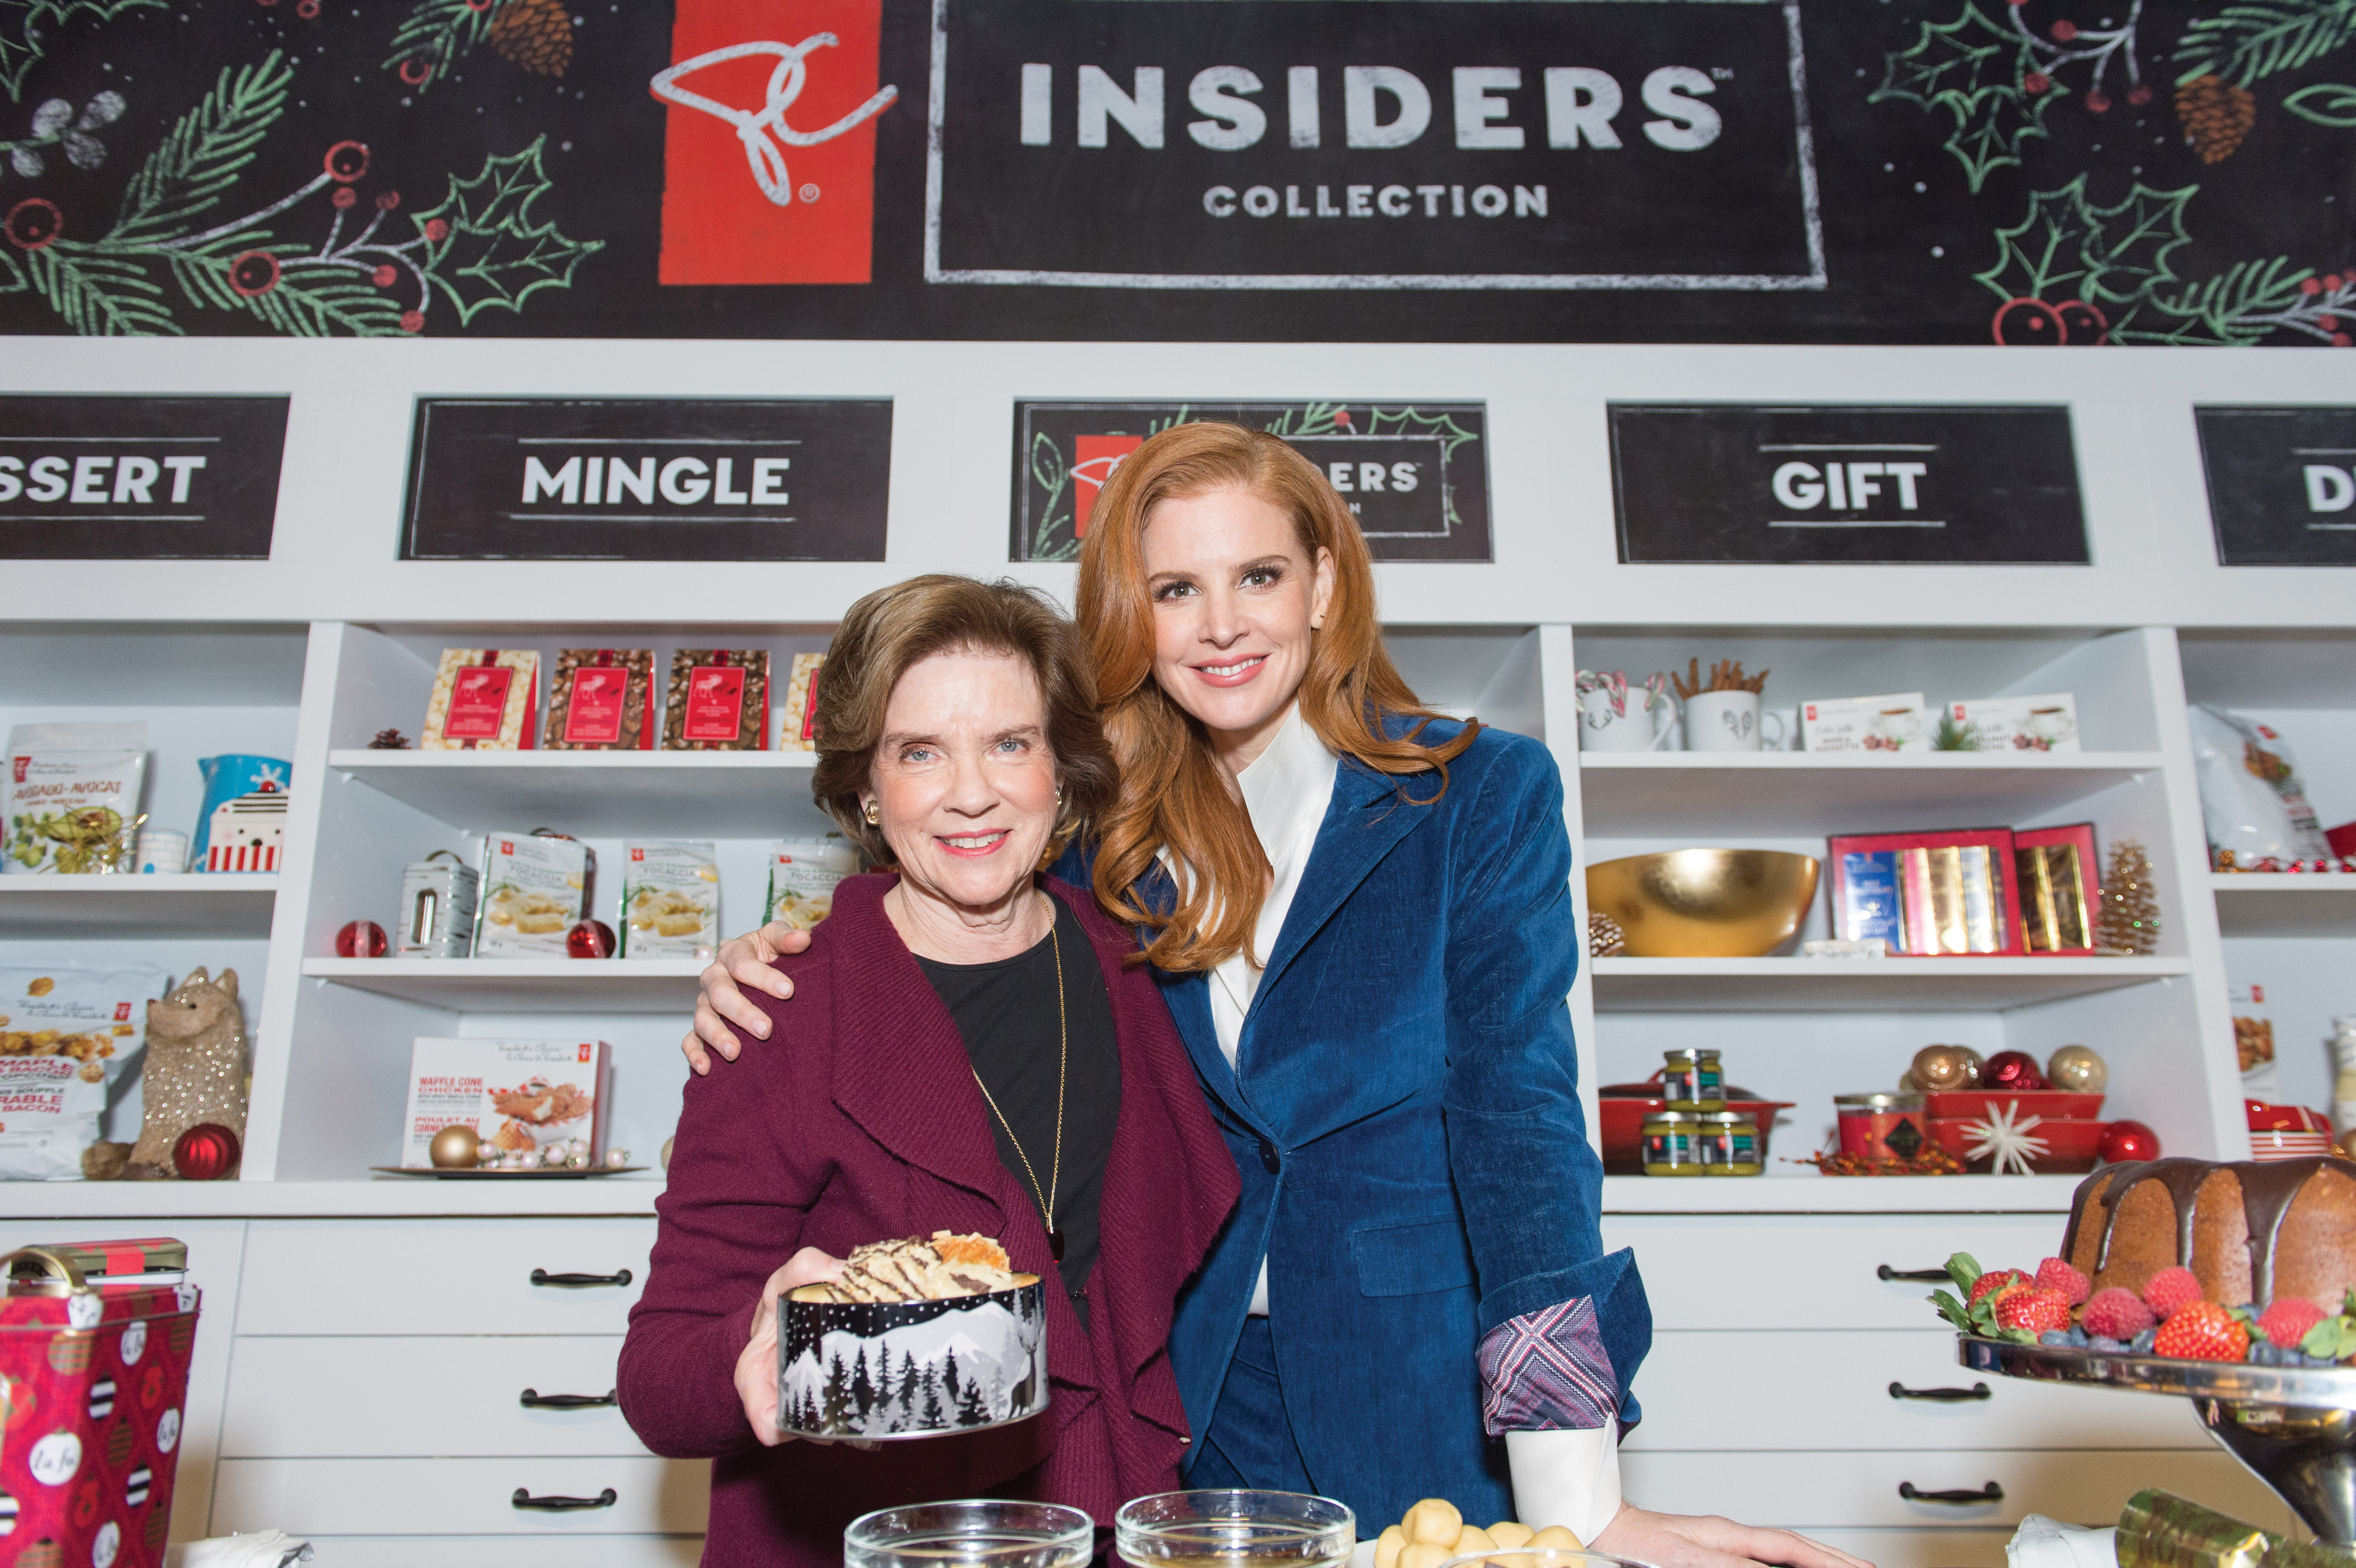 Tapping into the insight that holidays are full of long-held traditions, but also opportunities to create new ones, President's Choice and Citizen partnered with actress Sarah Rafferty and her mom, to show off how Canadians could reimagine their own holiday habits.